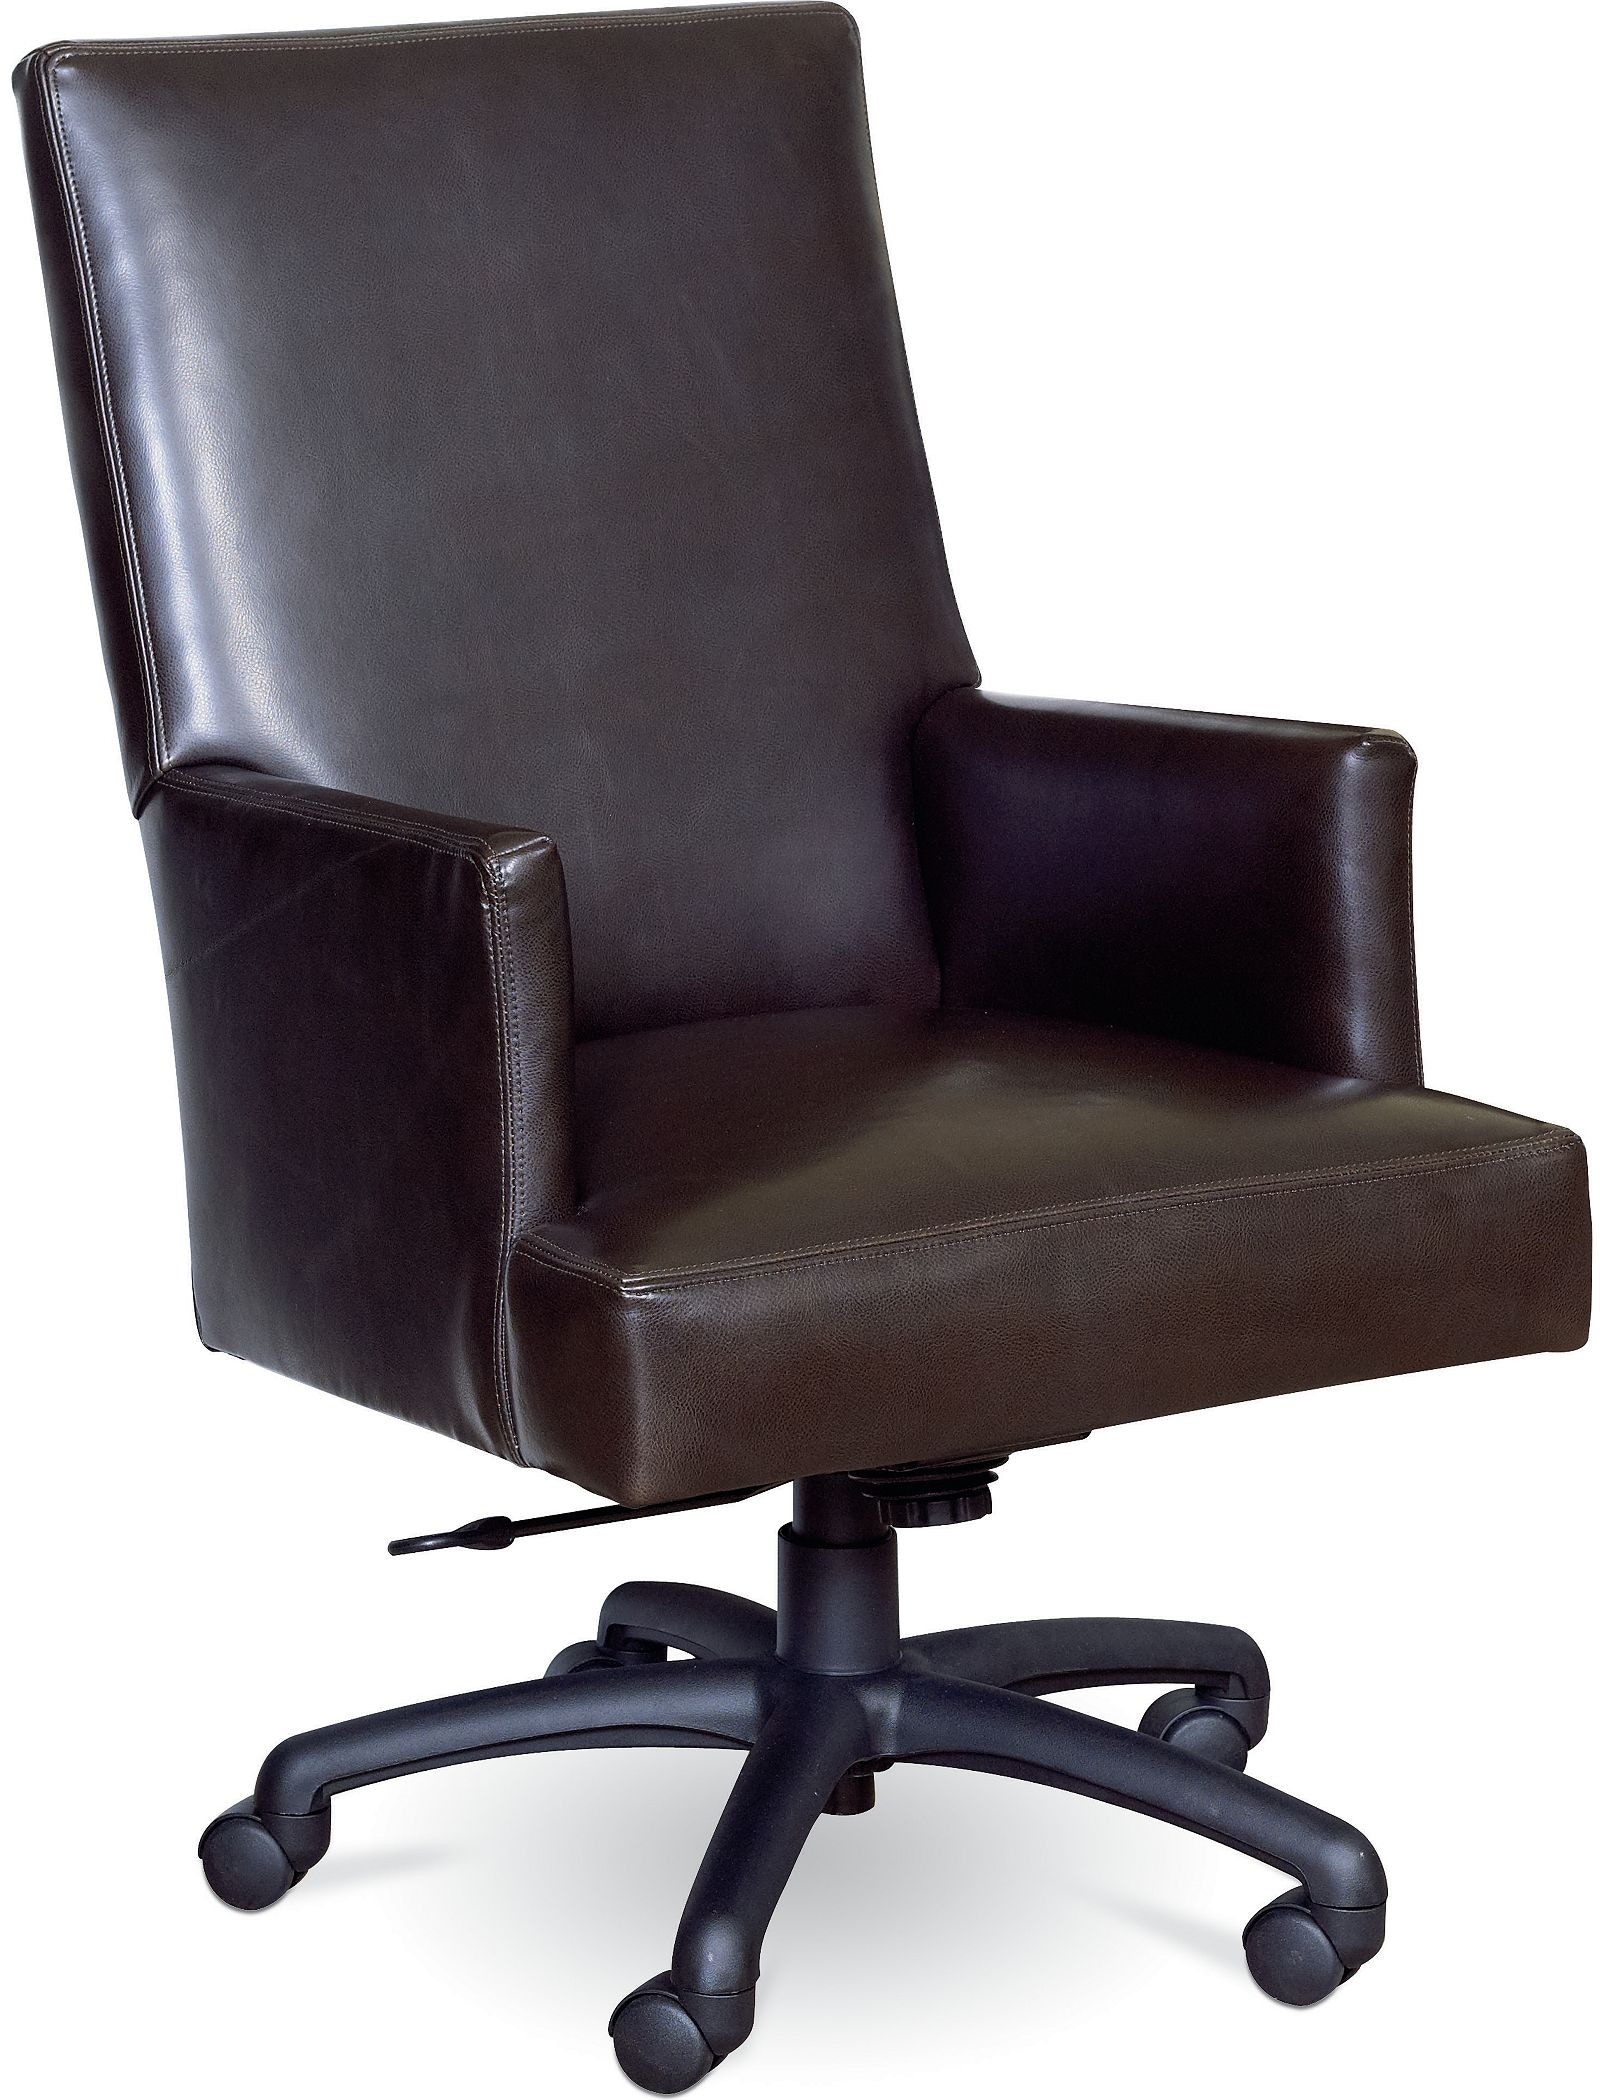 Thomasville Brown Leather Rolling Desk Chair Discount Thomasville Furniture Office Desk